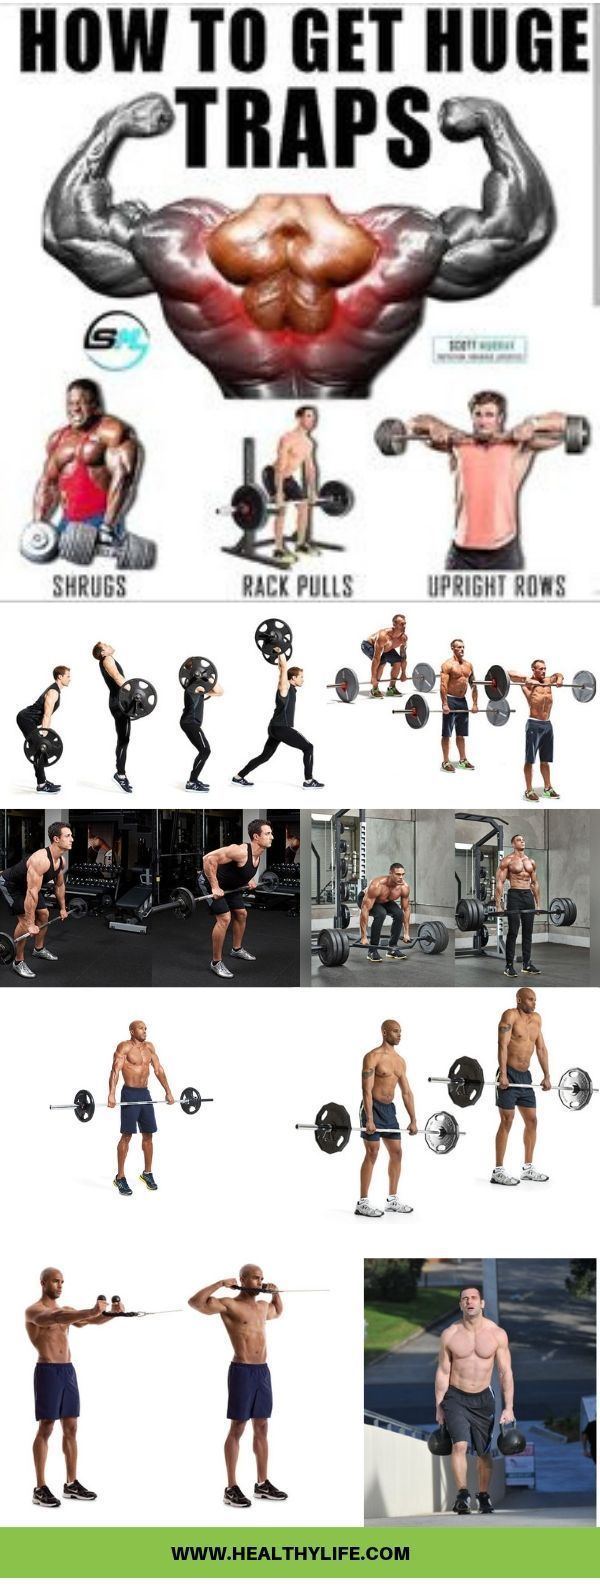 8 Trap Workouts For Men At The Gym For Bodybuilding Traps Workout Shoulder And Trap Workout Best Gym Workout